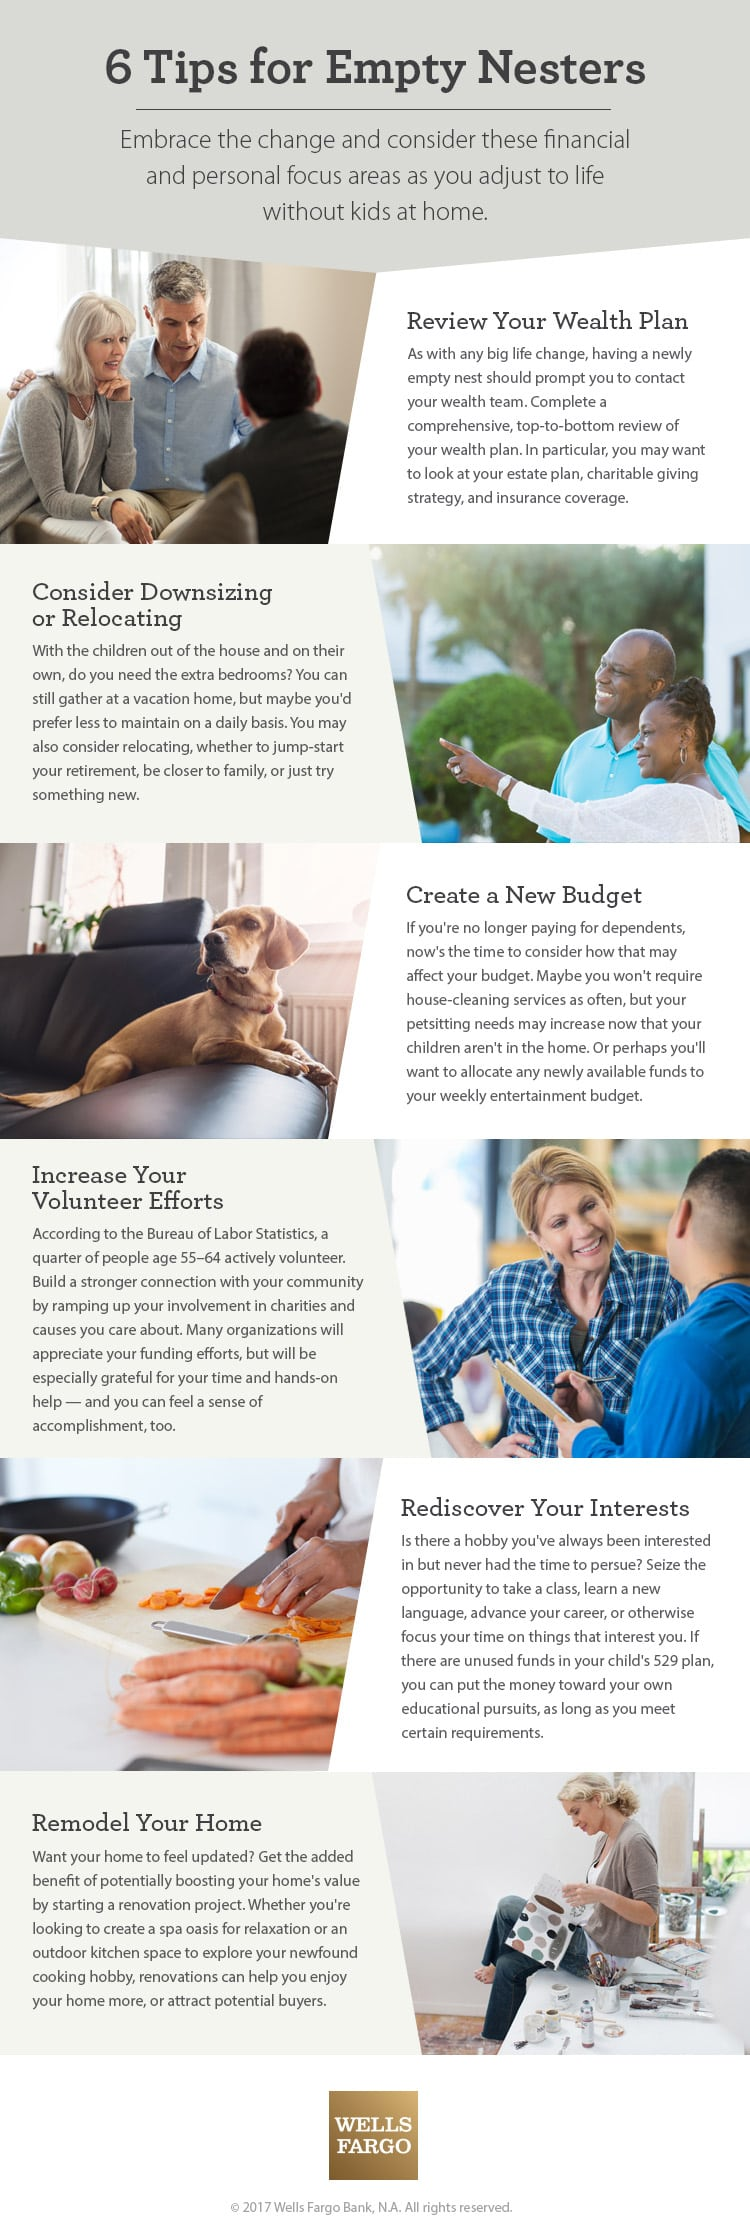 Images of six tips: review wealth plan, consider downsizing, create a new budget, increase volunteer efforts, rediscover interests, remodel your home.